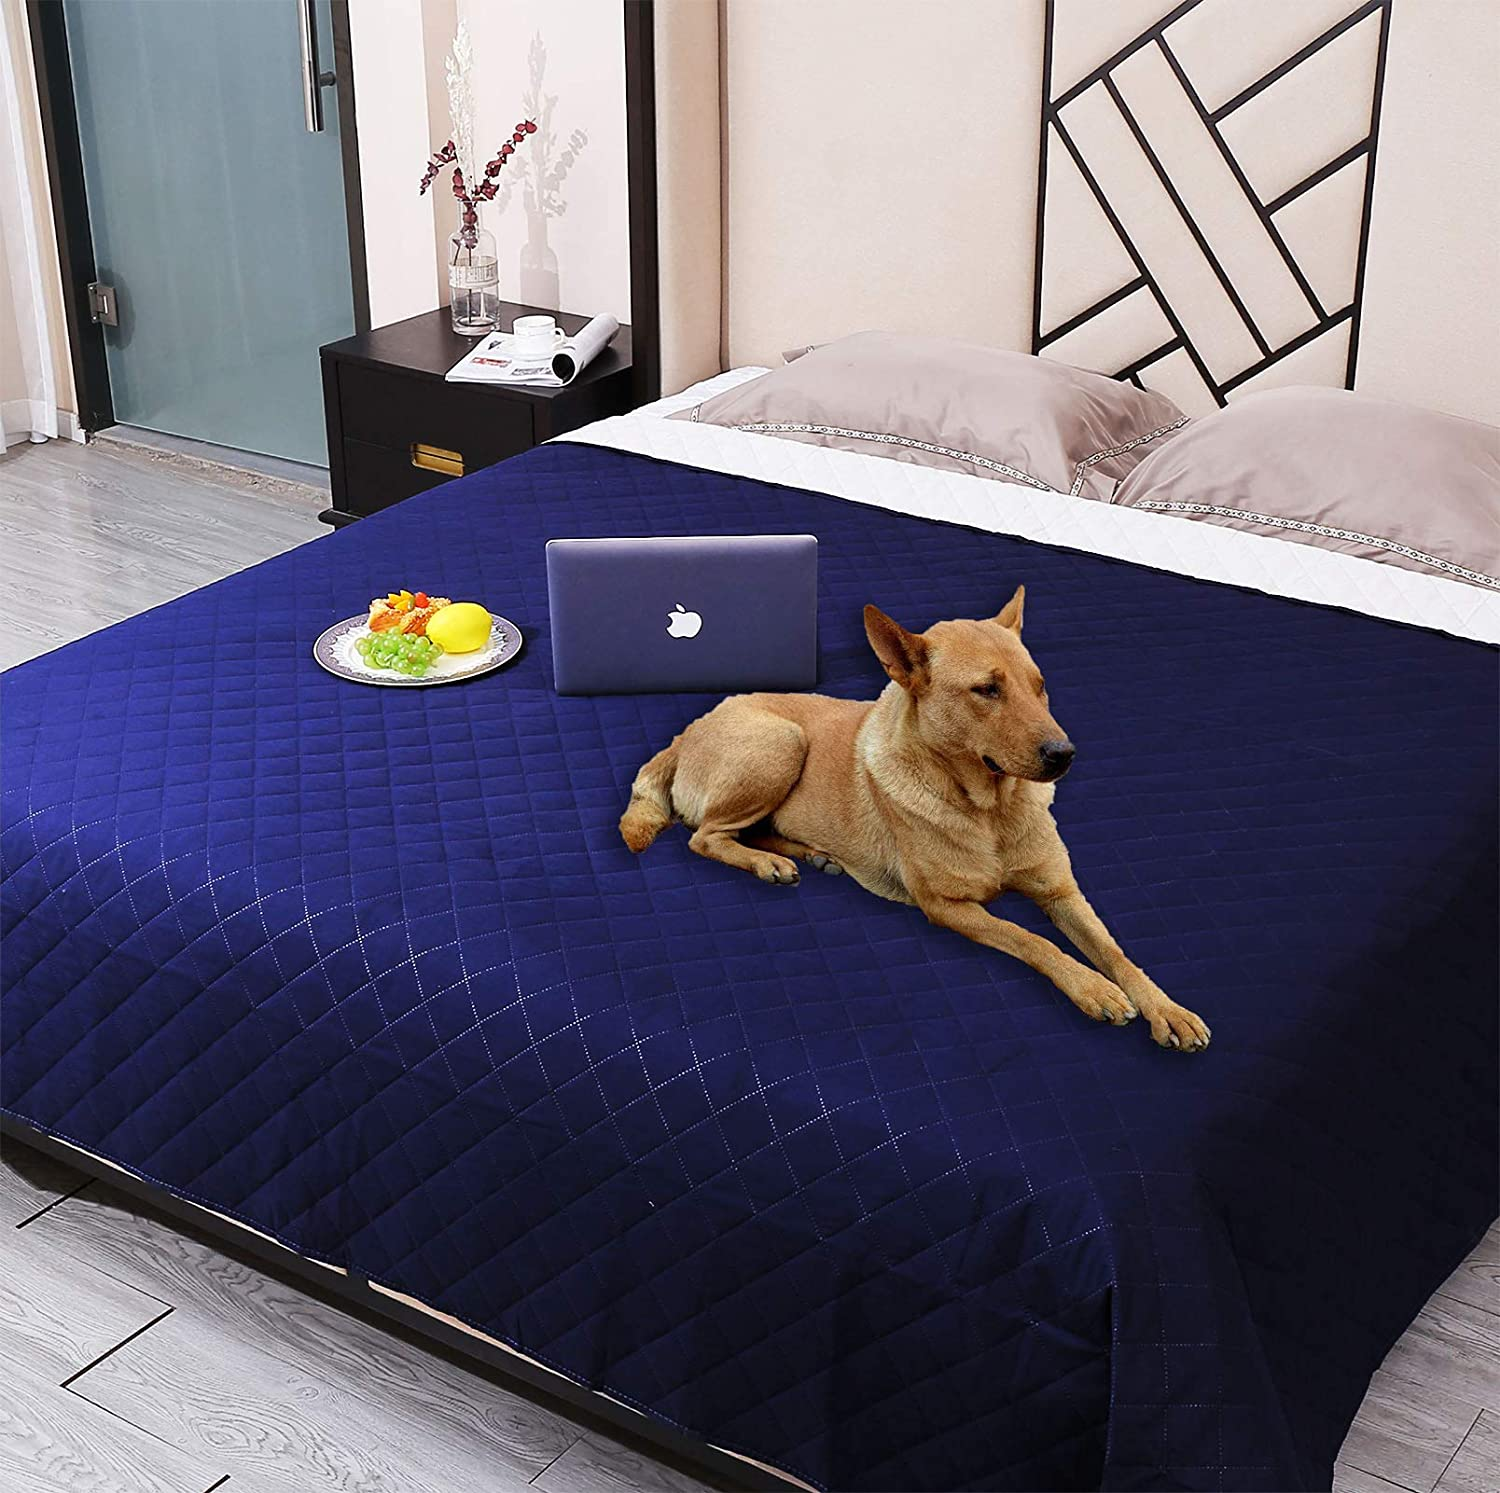 Snagle Paw Waterproof Dog Couch Cover,Washable Puppy Pad,ReusableDog Bed Cover with Non-Slip Back,Pet Furniture Bed and Sofa Cover,Water-Resistant Pee Pads for Dogs